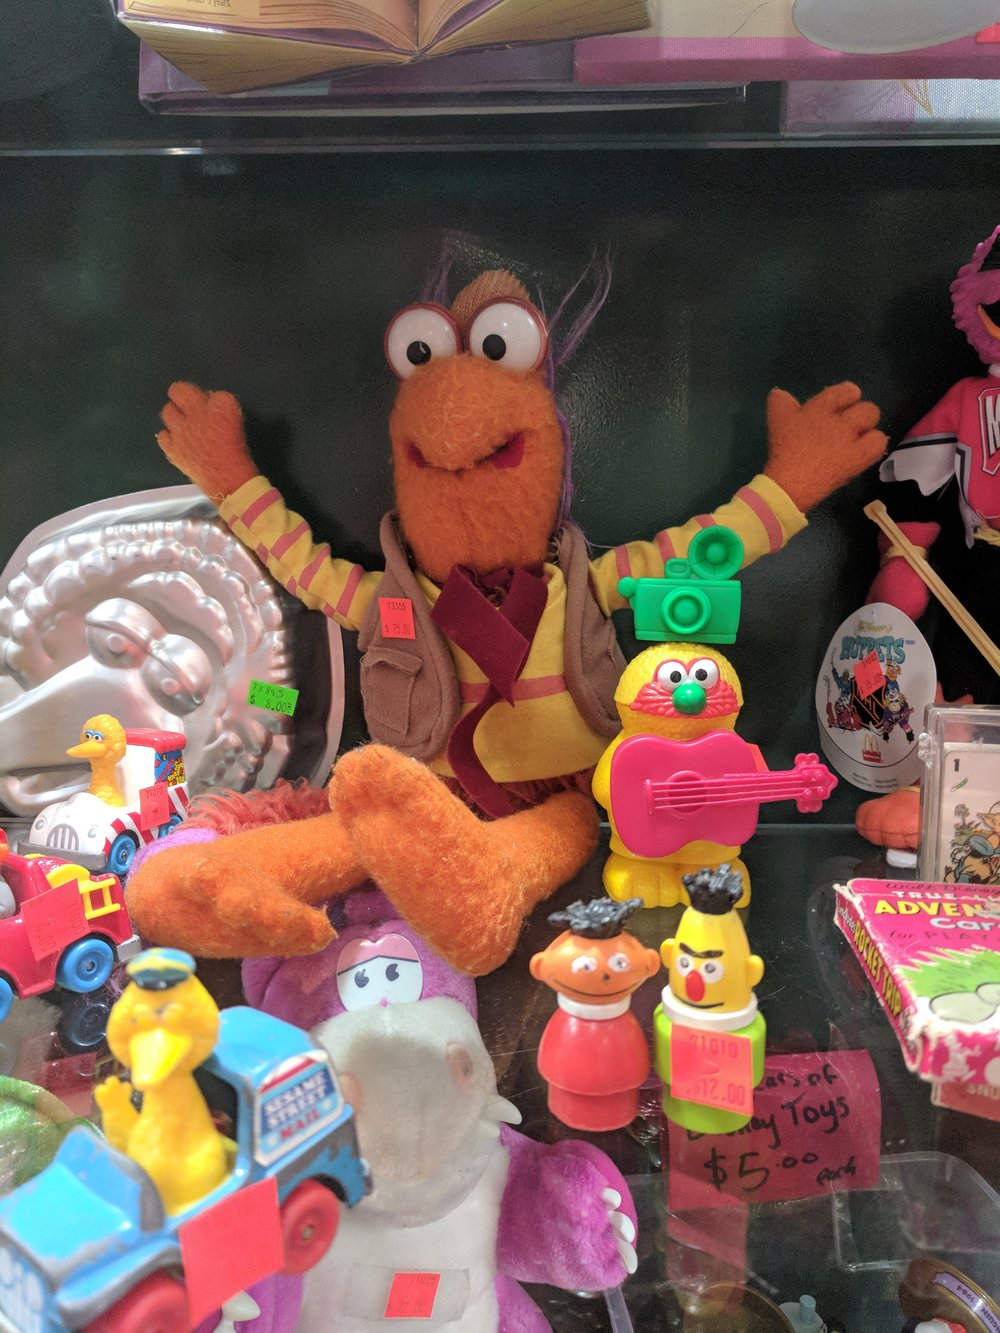 I find Gobo Fraggle with its wig ripped off is hilariously horrifying